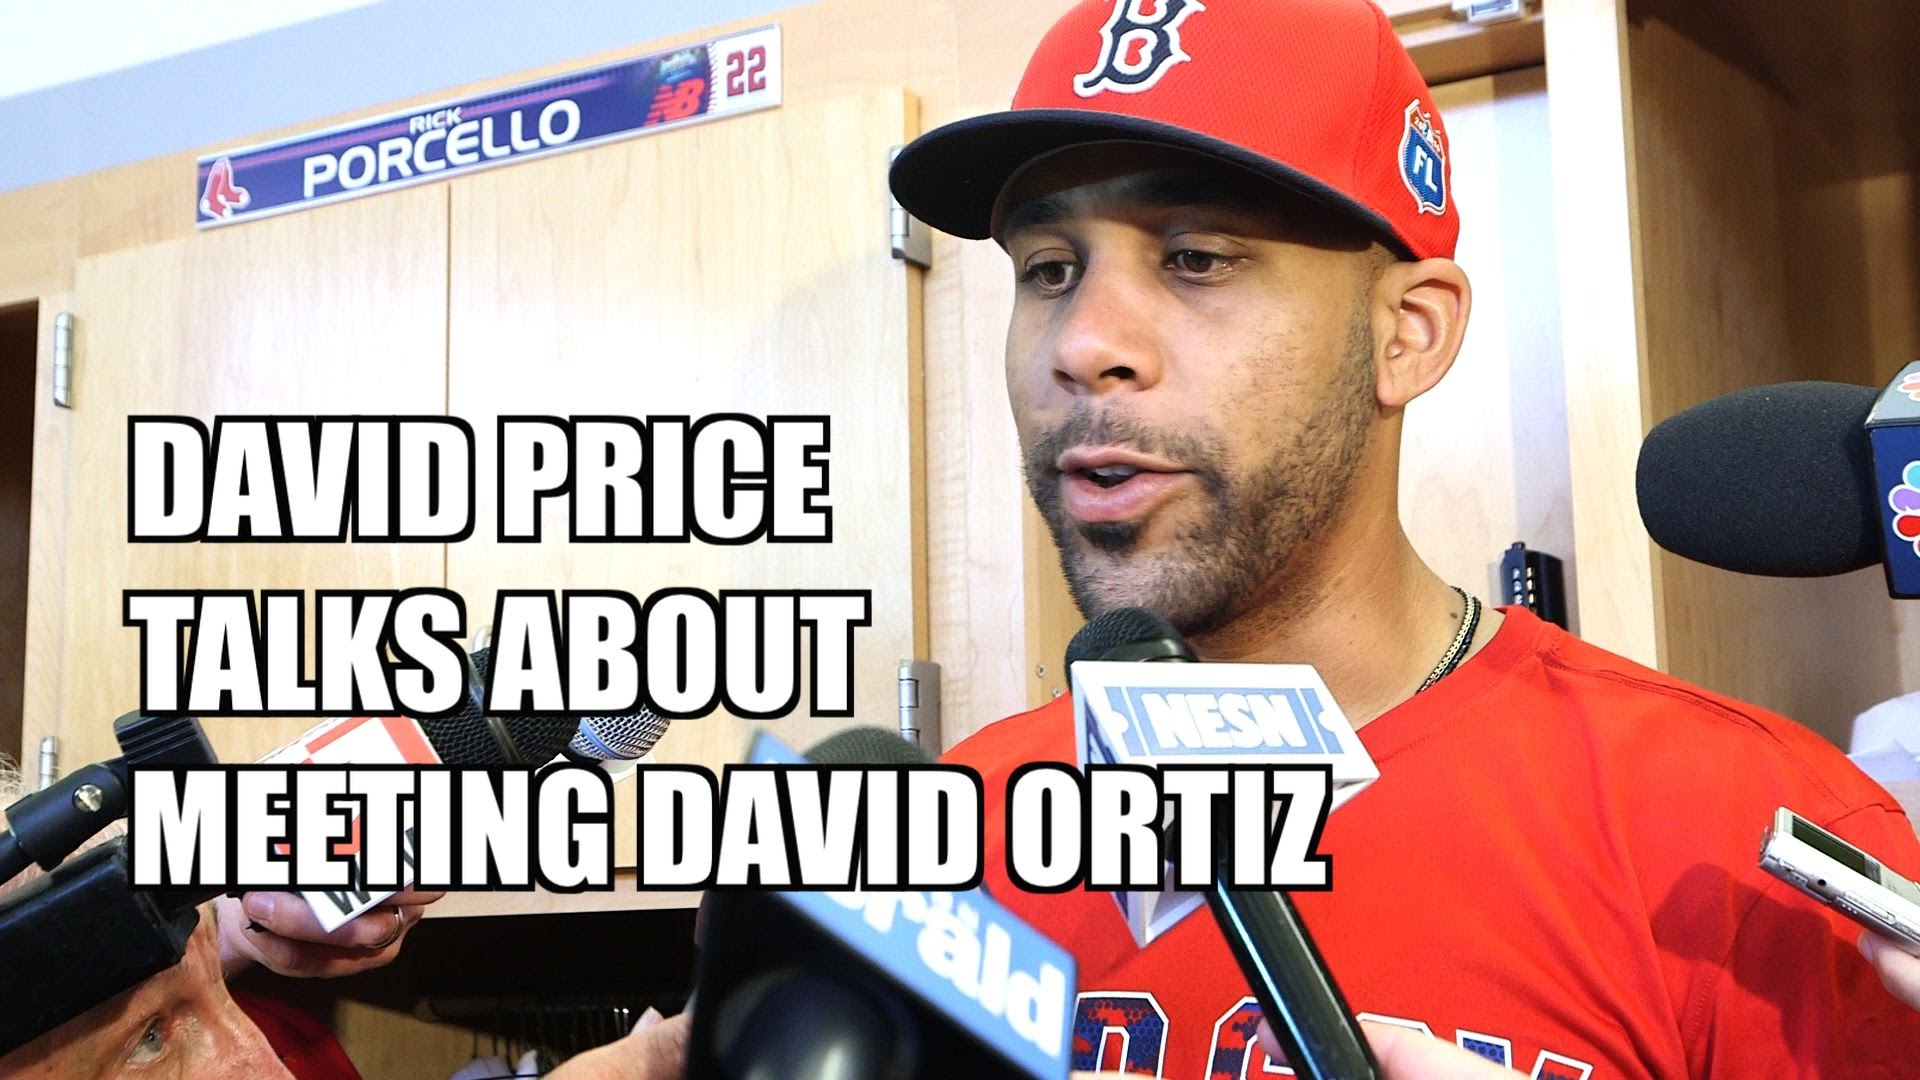 David Price speaks on meeting David Ortiz after well documented beef